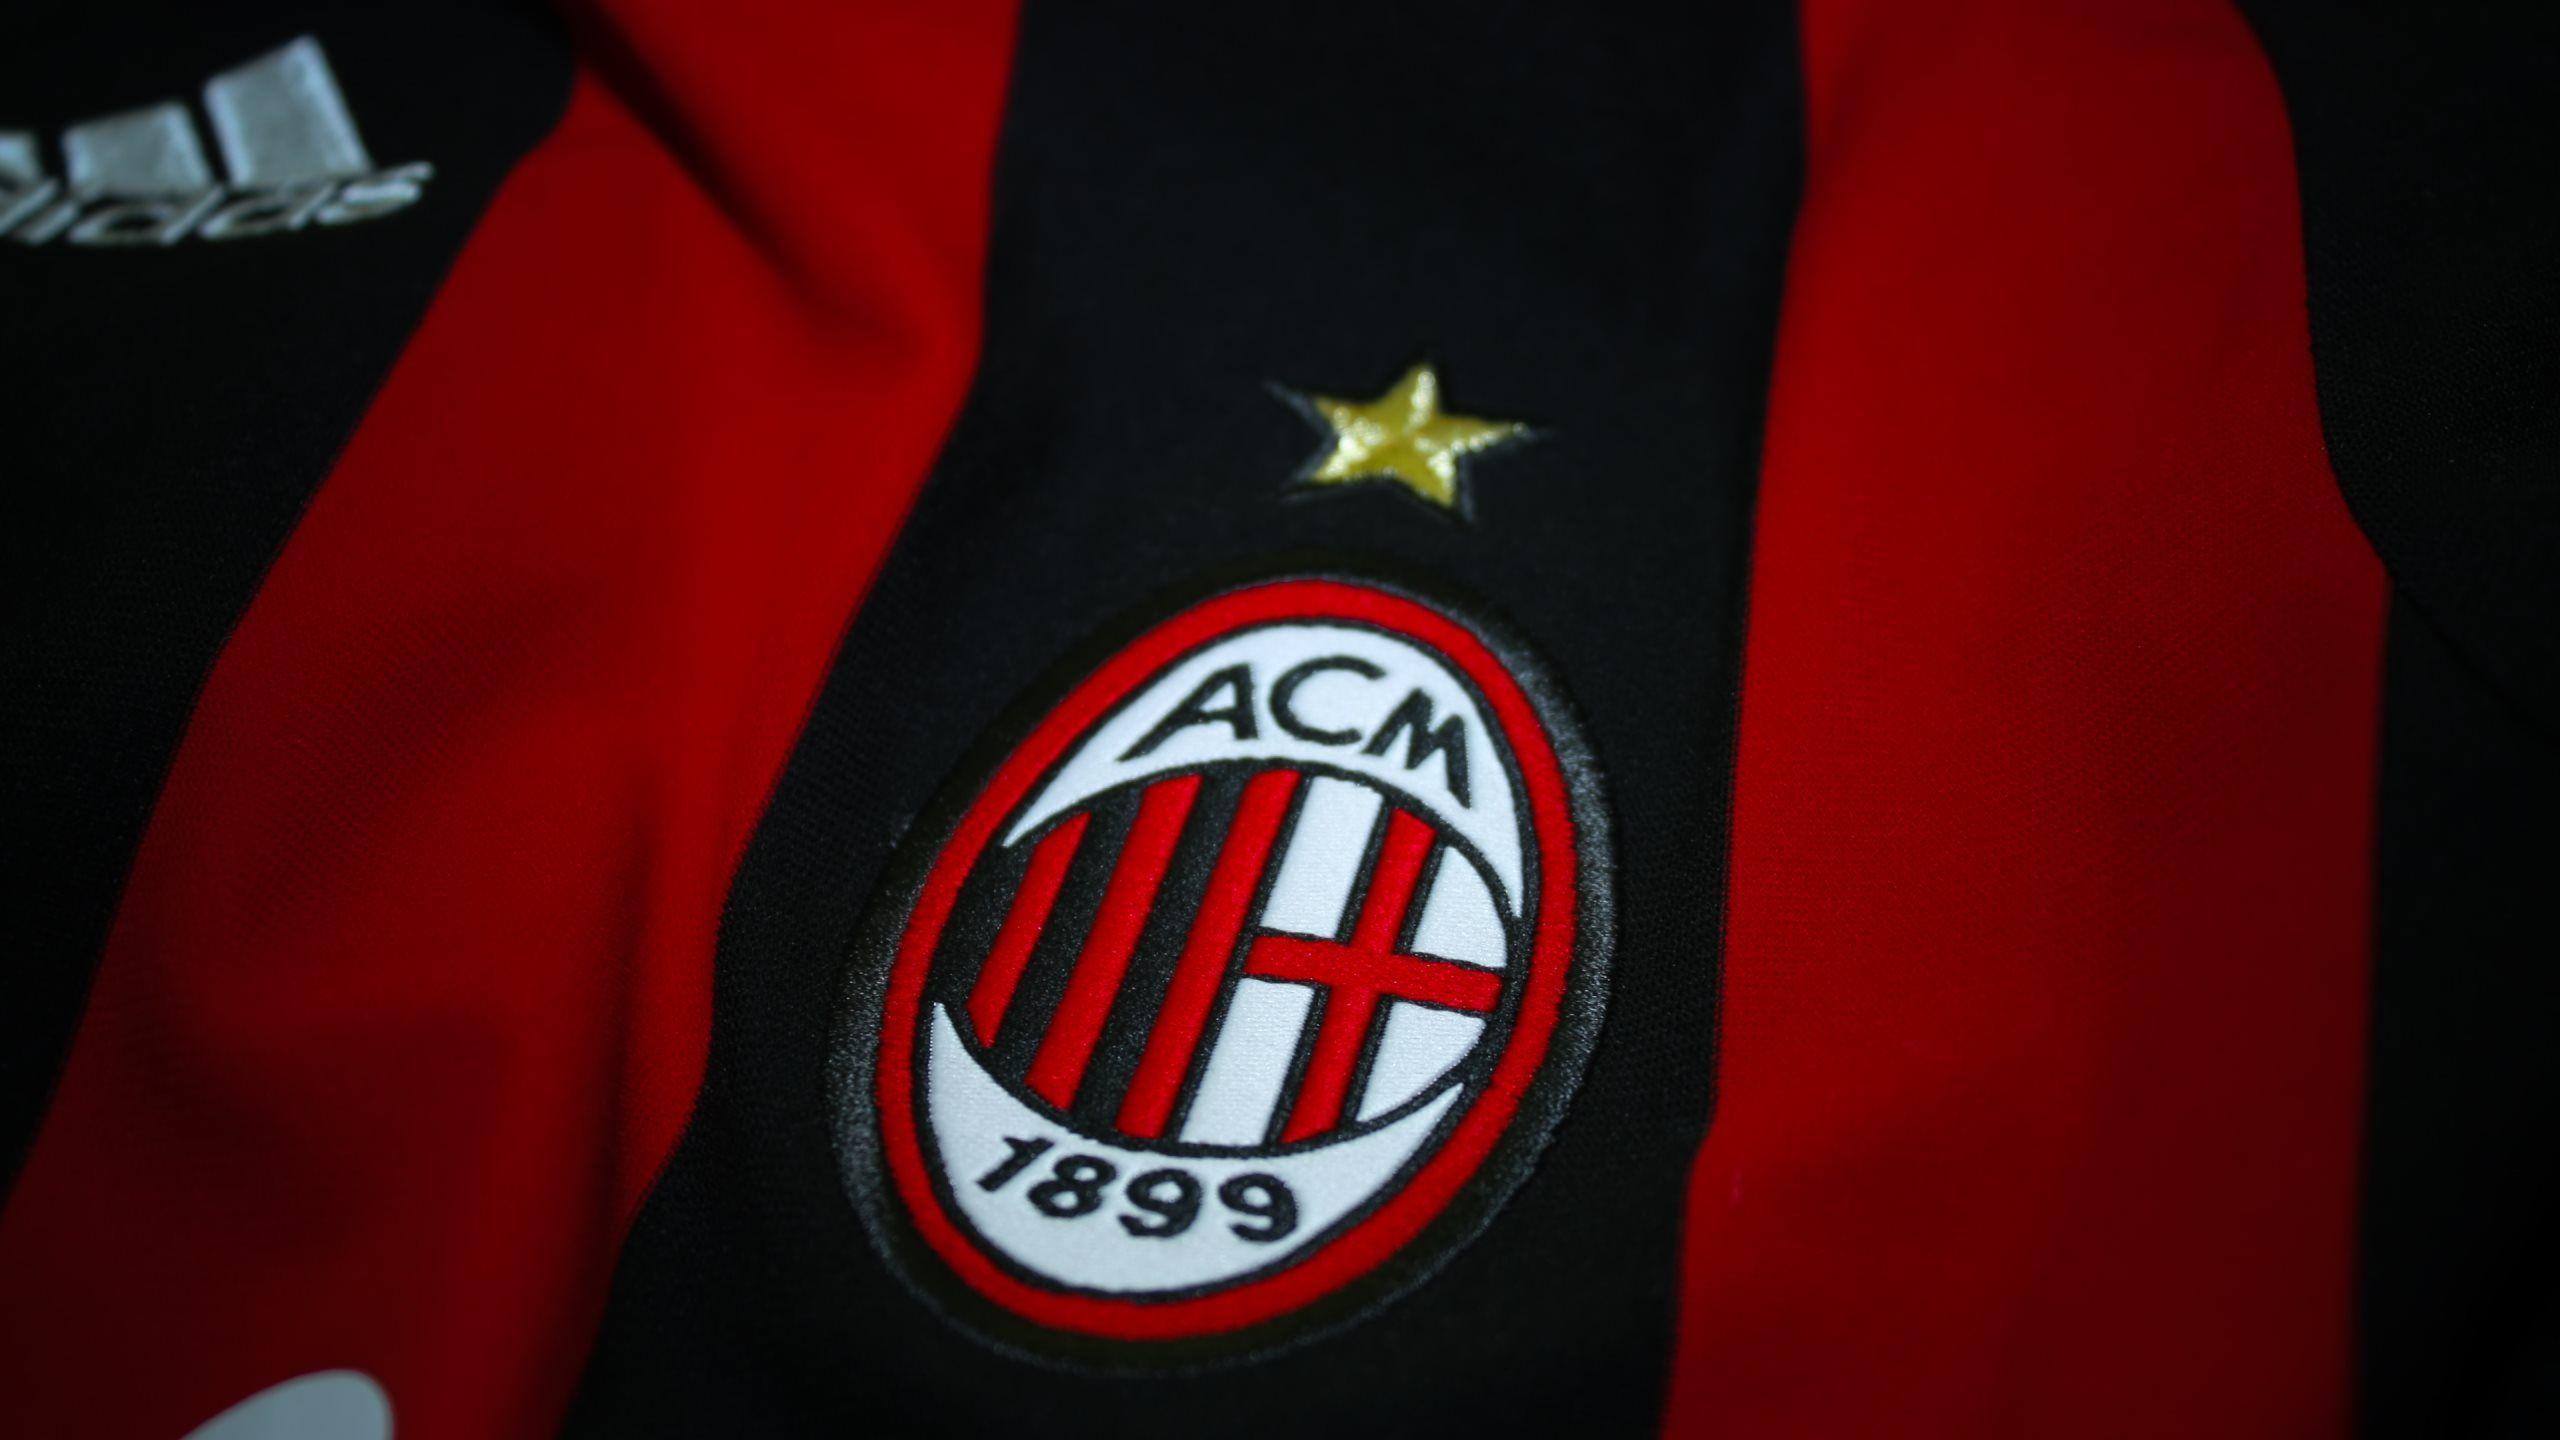 Hd wallpaper ac milan - Ac Milan Wallpaper Hd Soccer Desktop